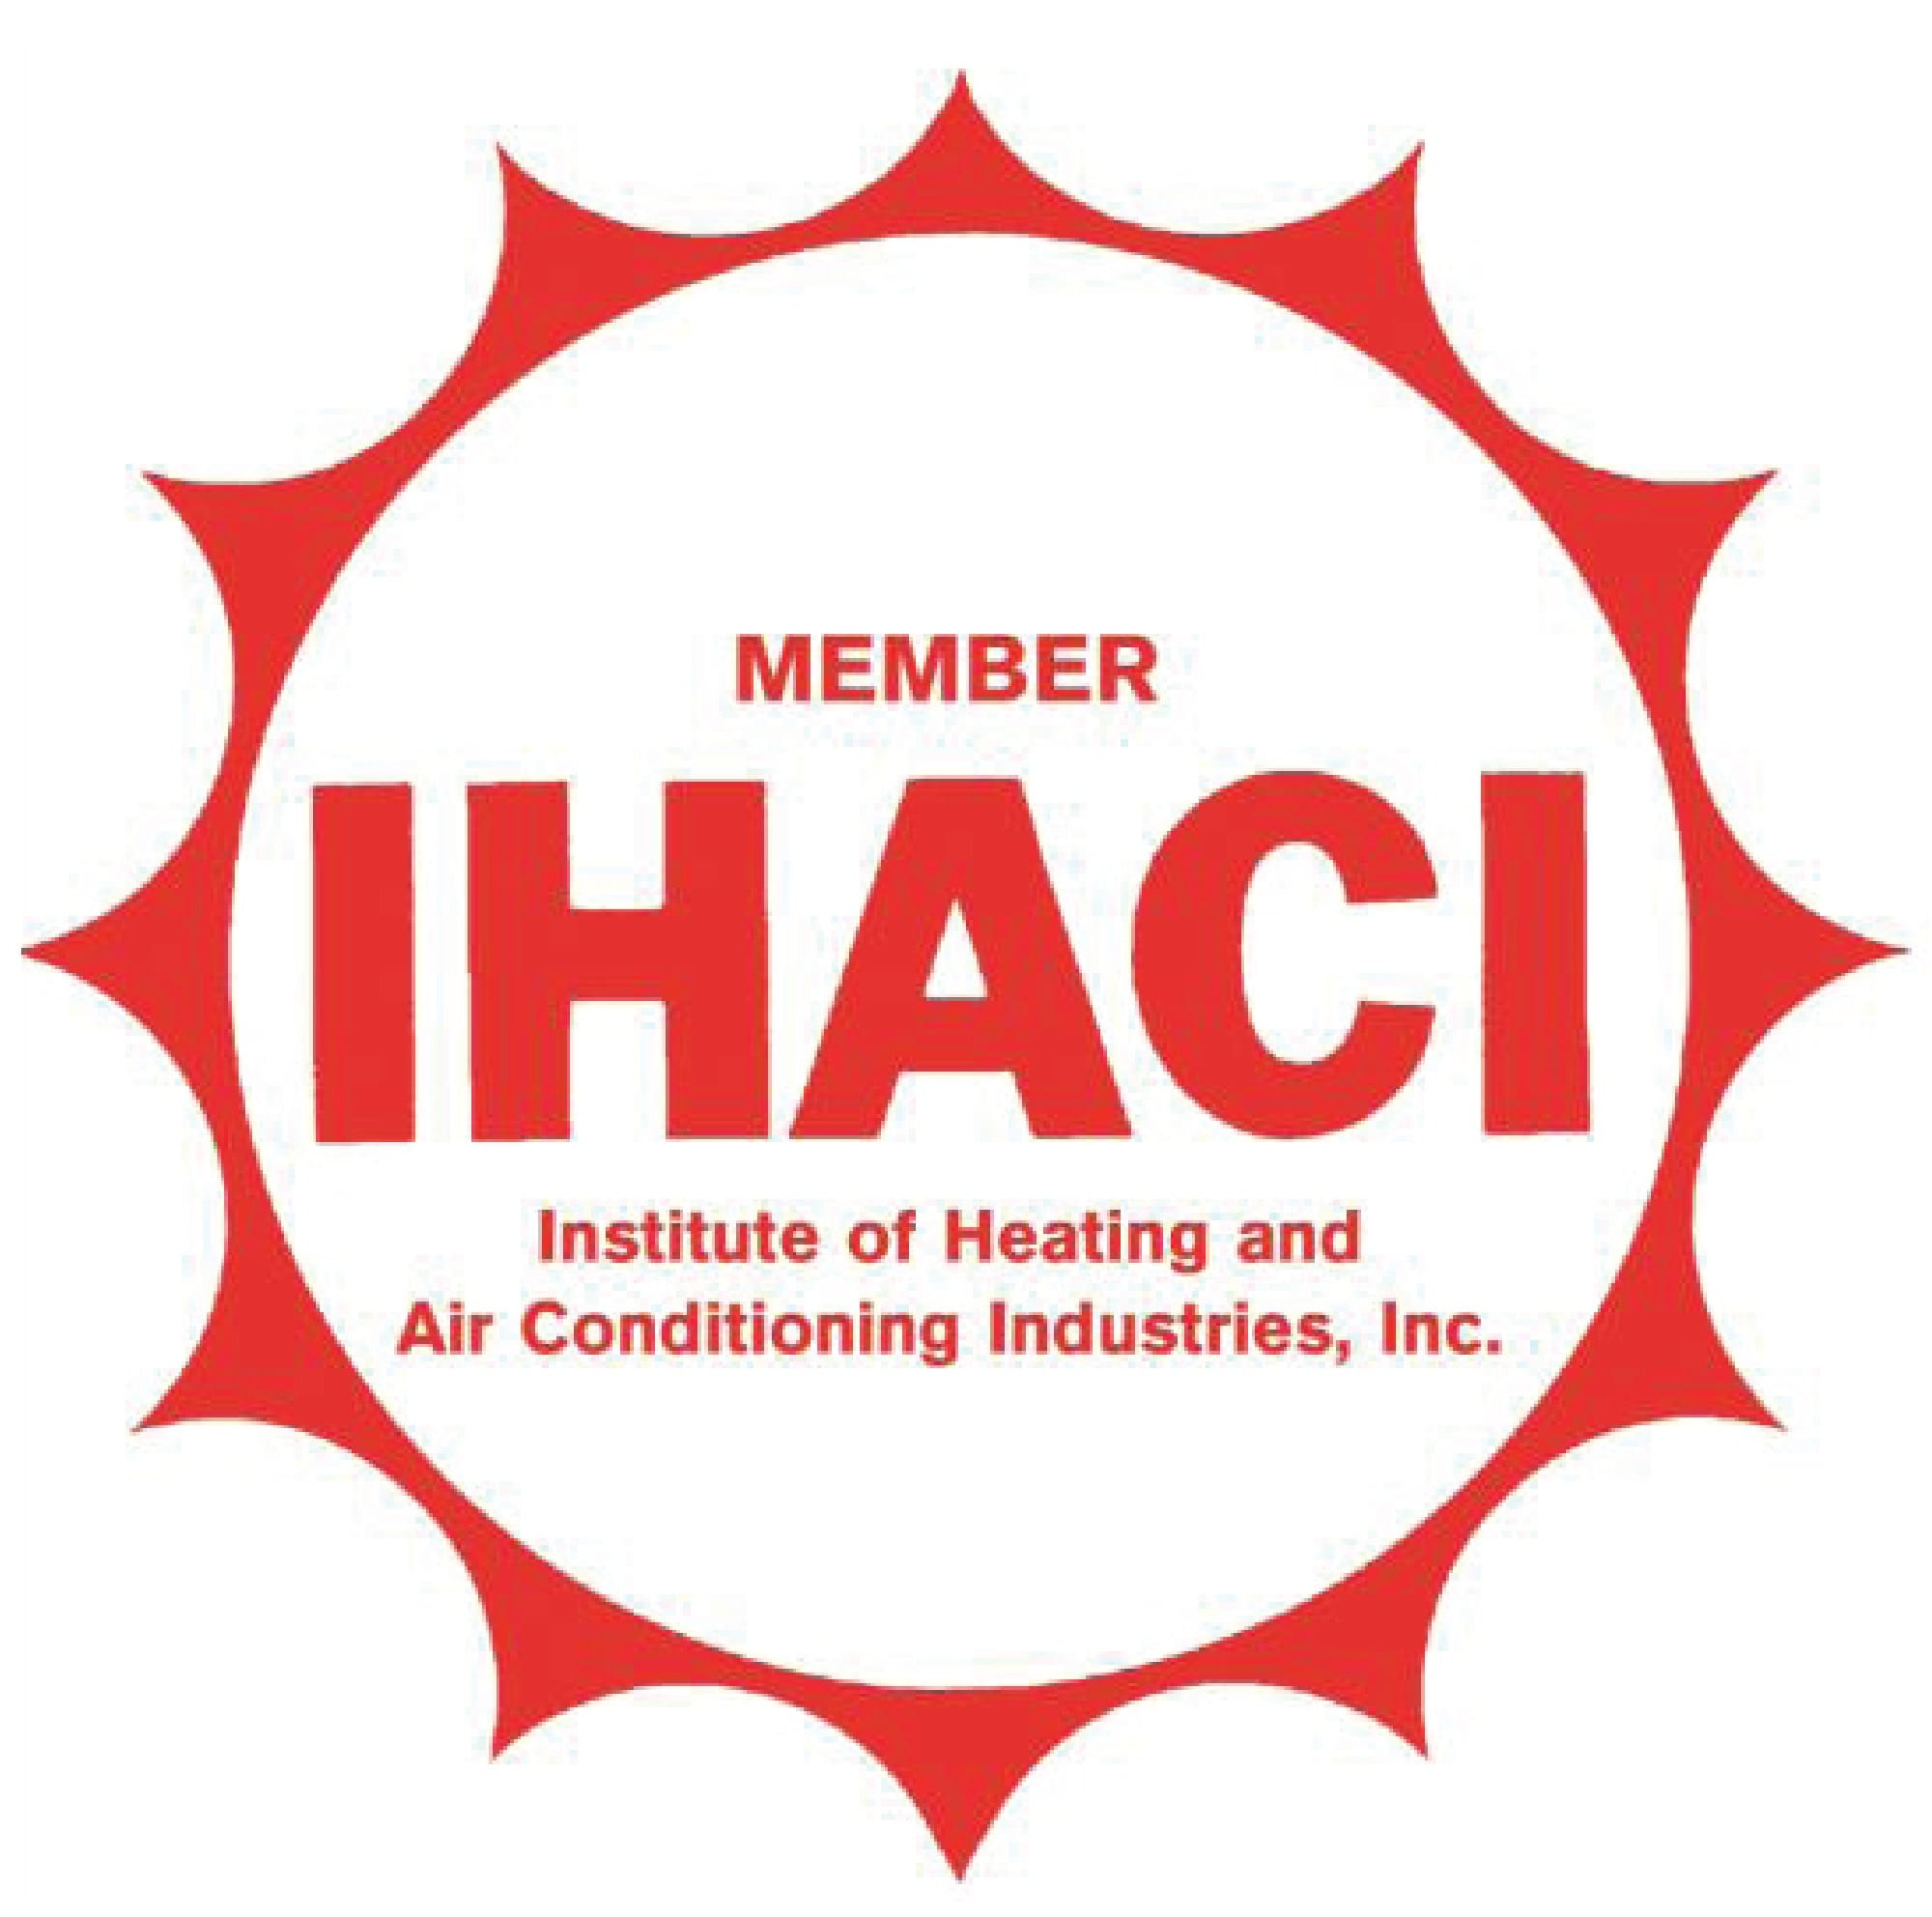 Bill howe hvac certifications ihaci is a non profit trade organization in which members subscribe to the organizations code of ethics xflitez Image collections